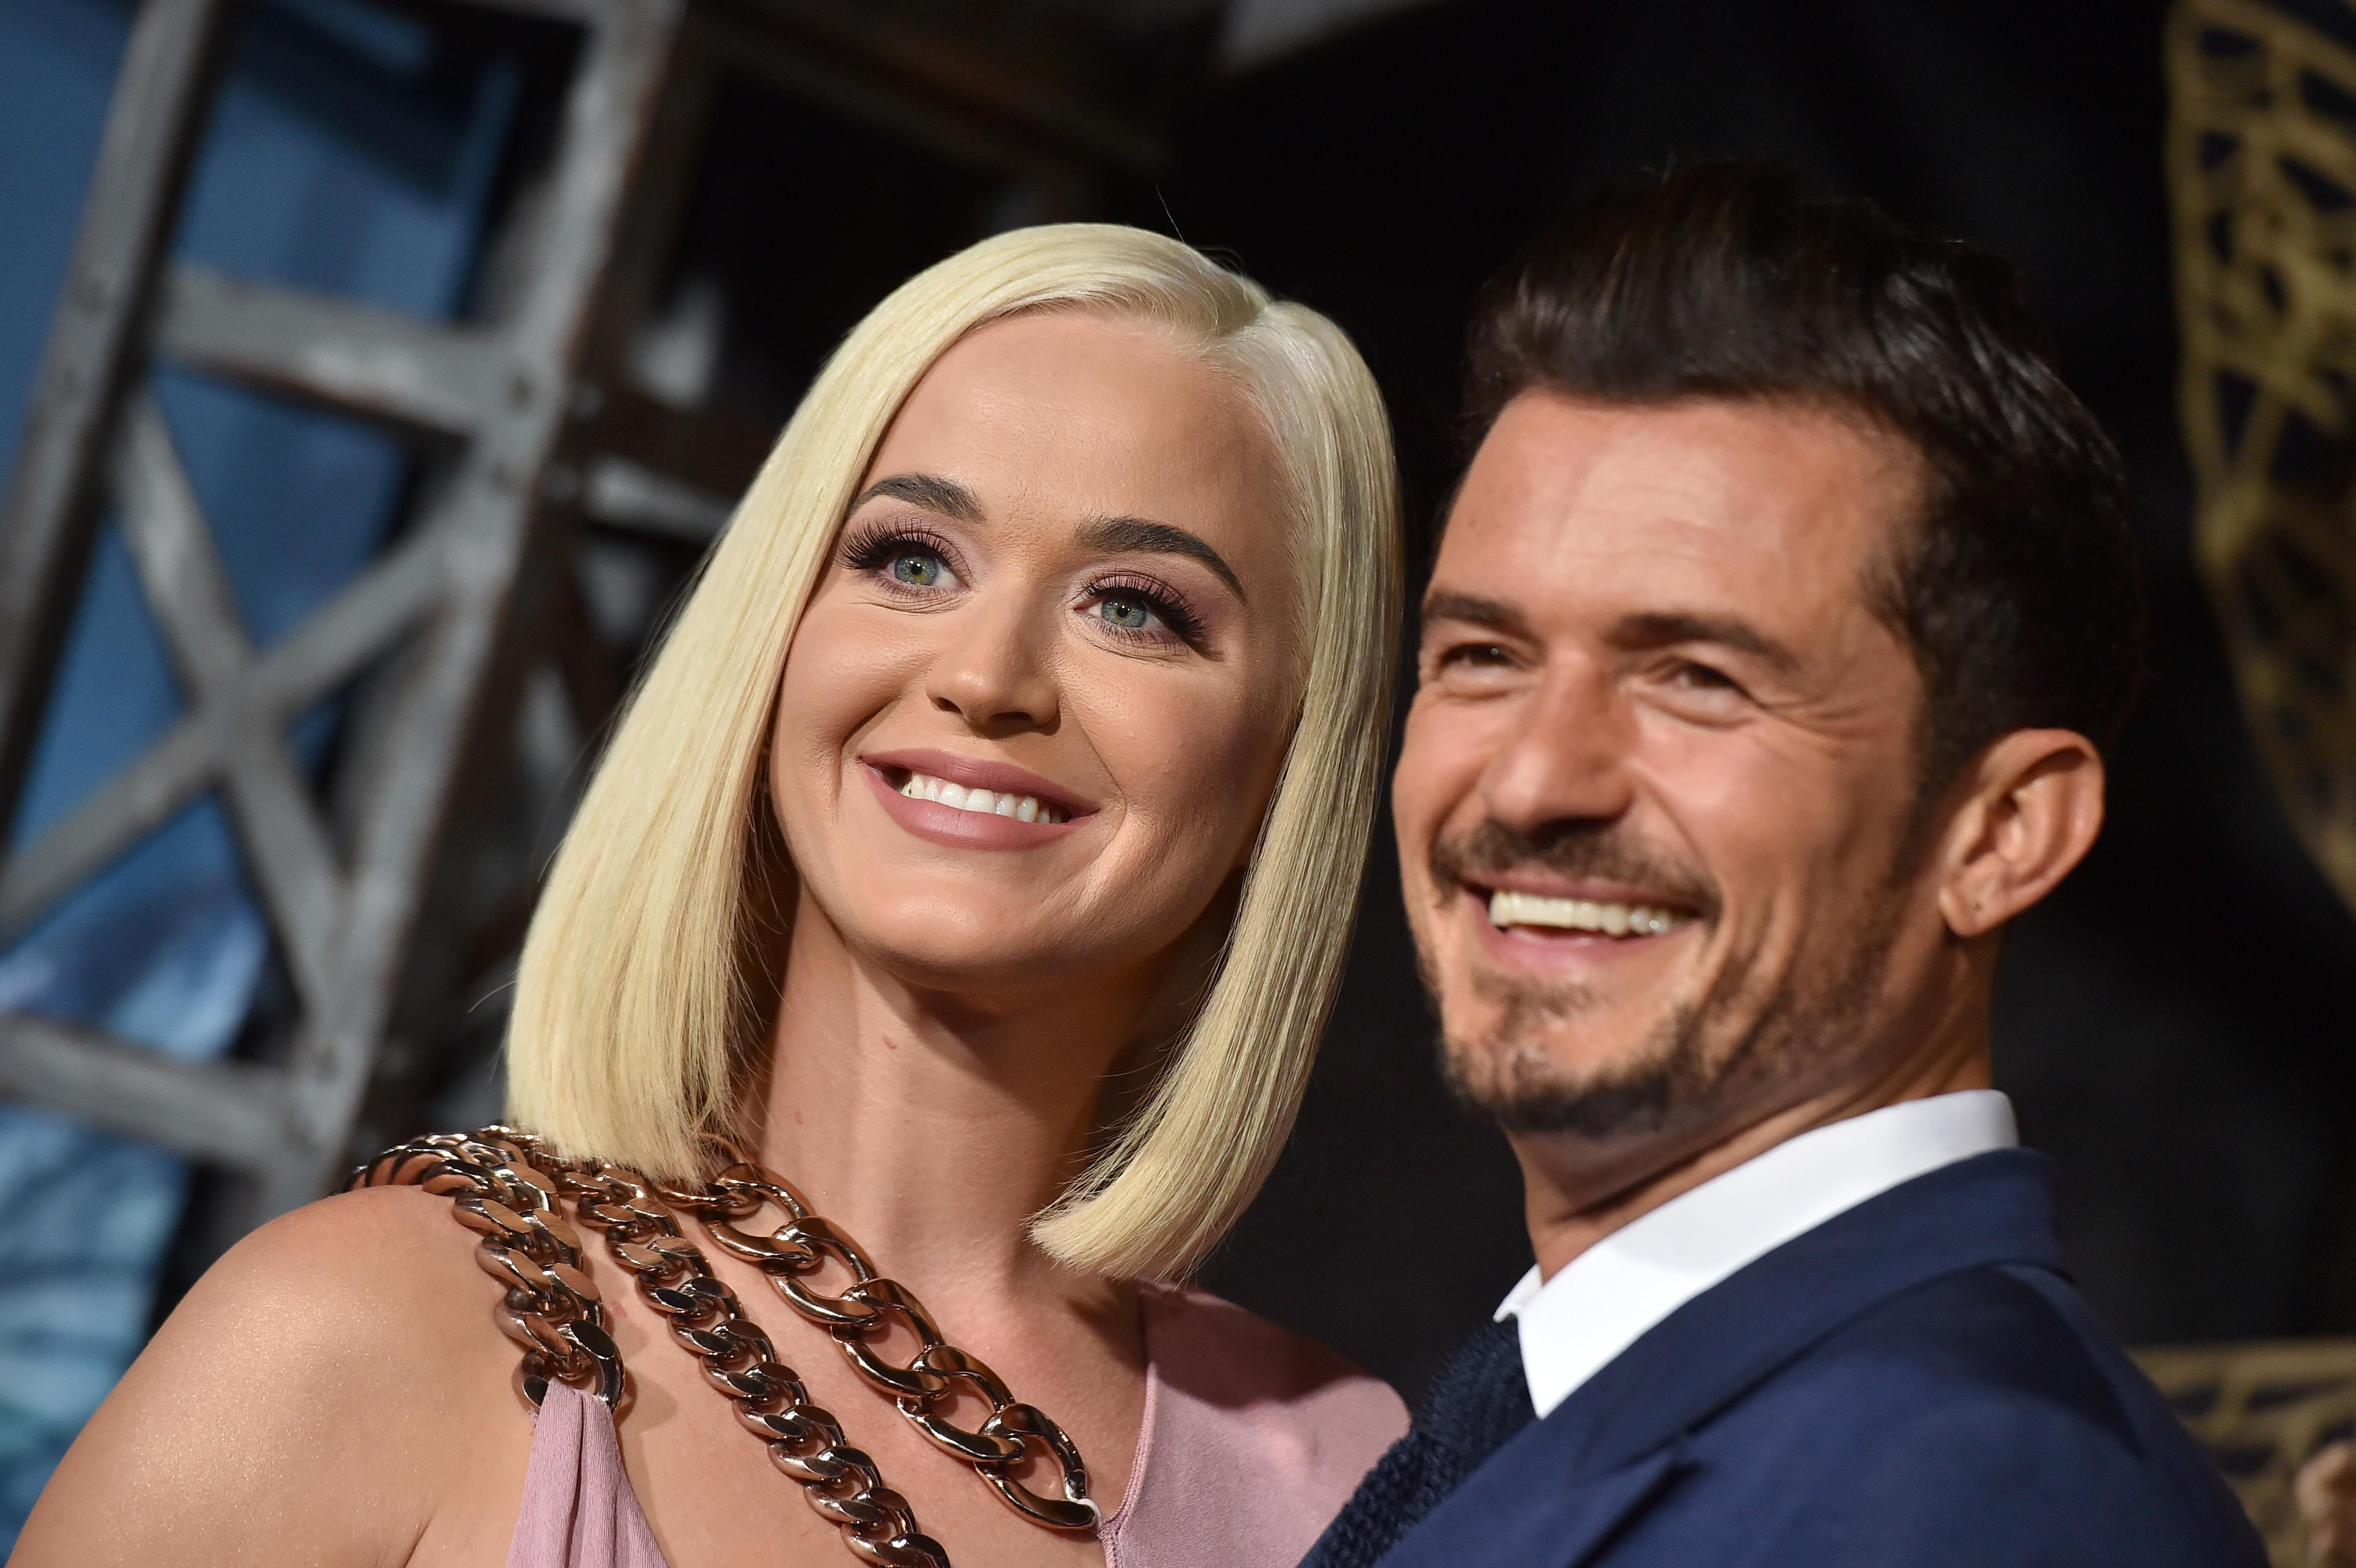 Orlando Bloom says he plans to marry Katy Perry 'very, very soon' — but  'coronavirus might have a play in whether we put things on ice'